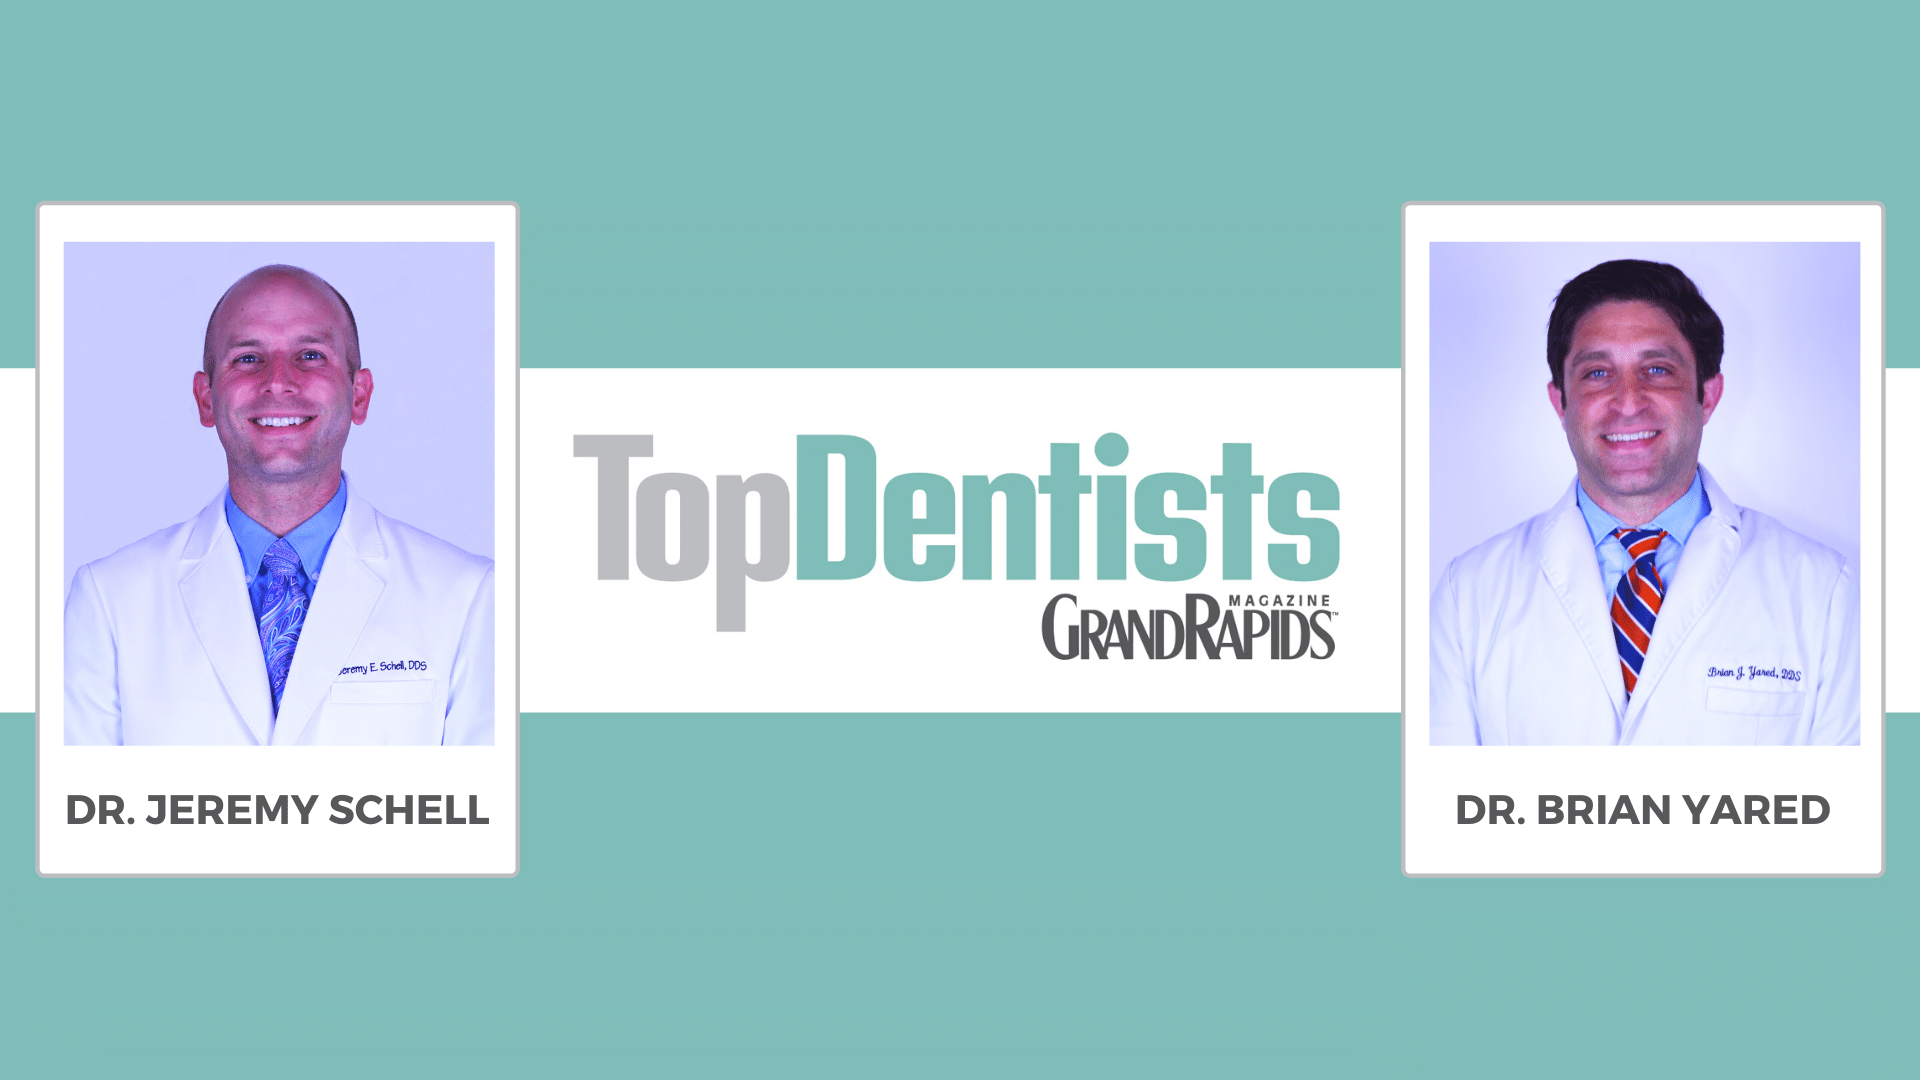 Top Dentist Grand Rapids - Dr. Jeremy Schell & Dr. Brian Yared